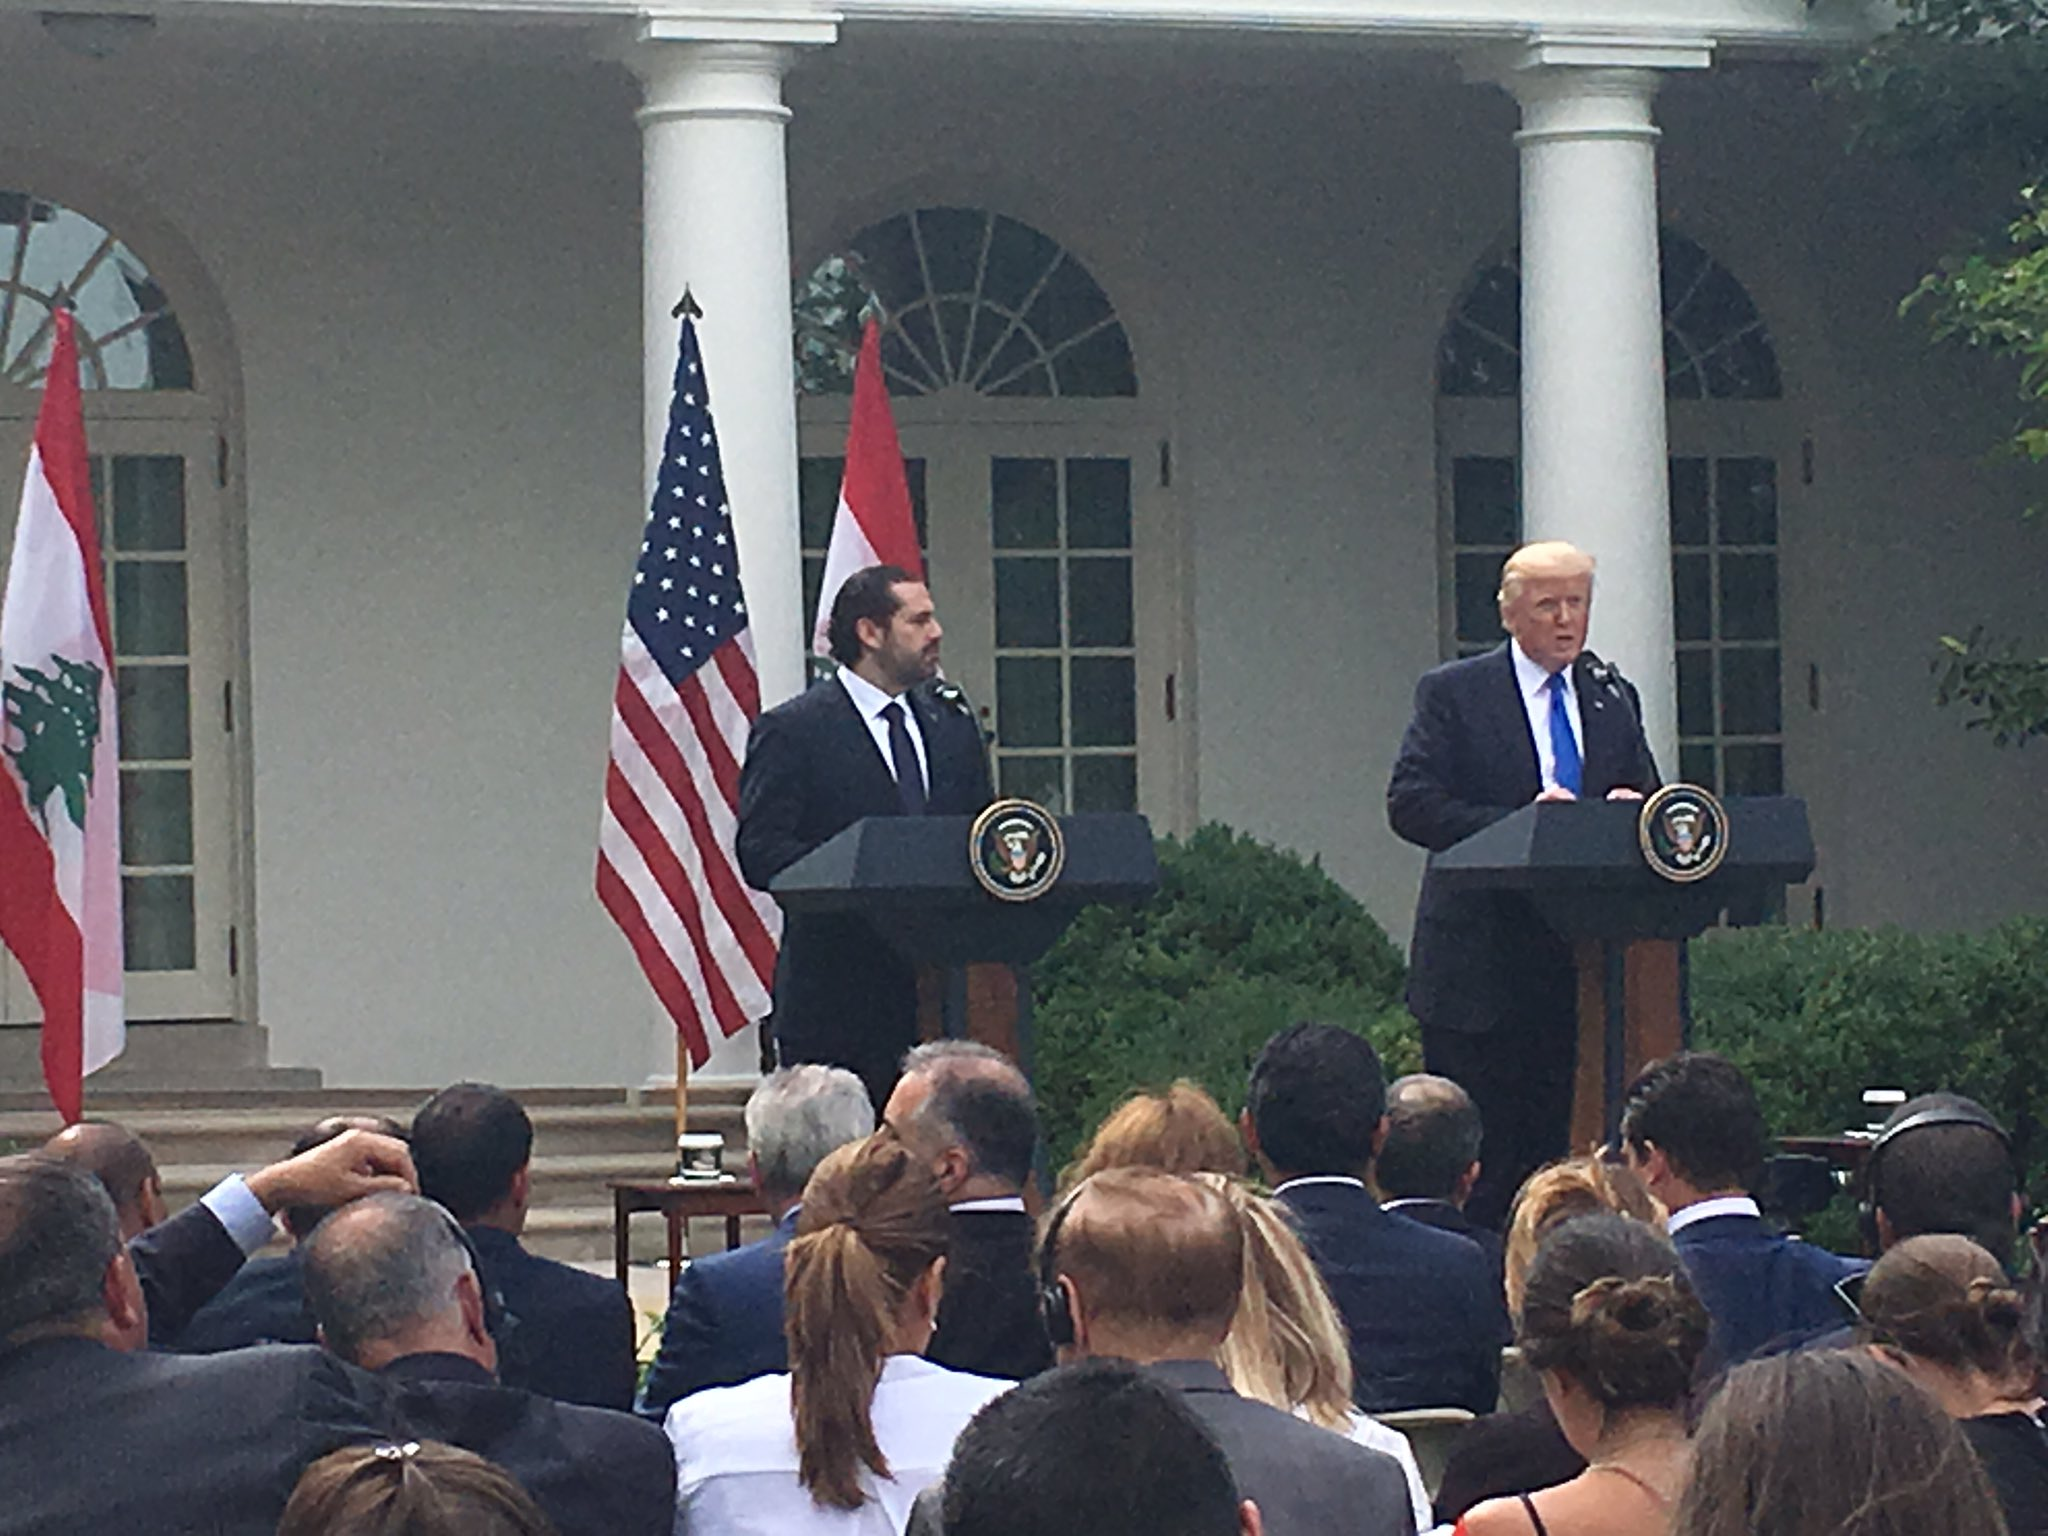 .@POTUS and the Prime Minister of Lebanon made statements and took questions in @WhiteHouse Rose Garden https://t.co/vFoaMRvT0O